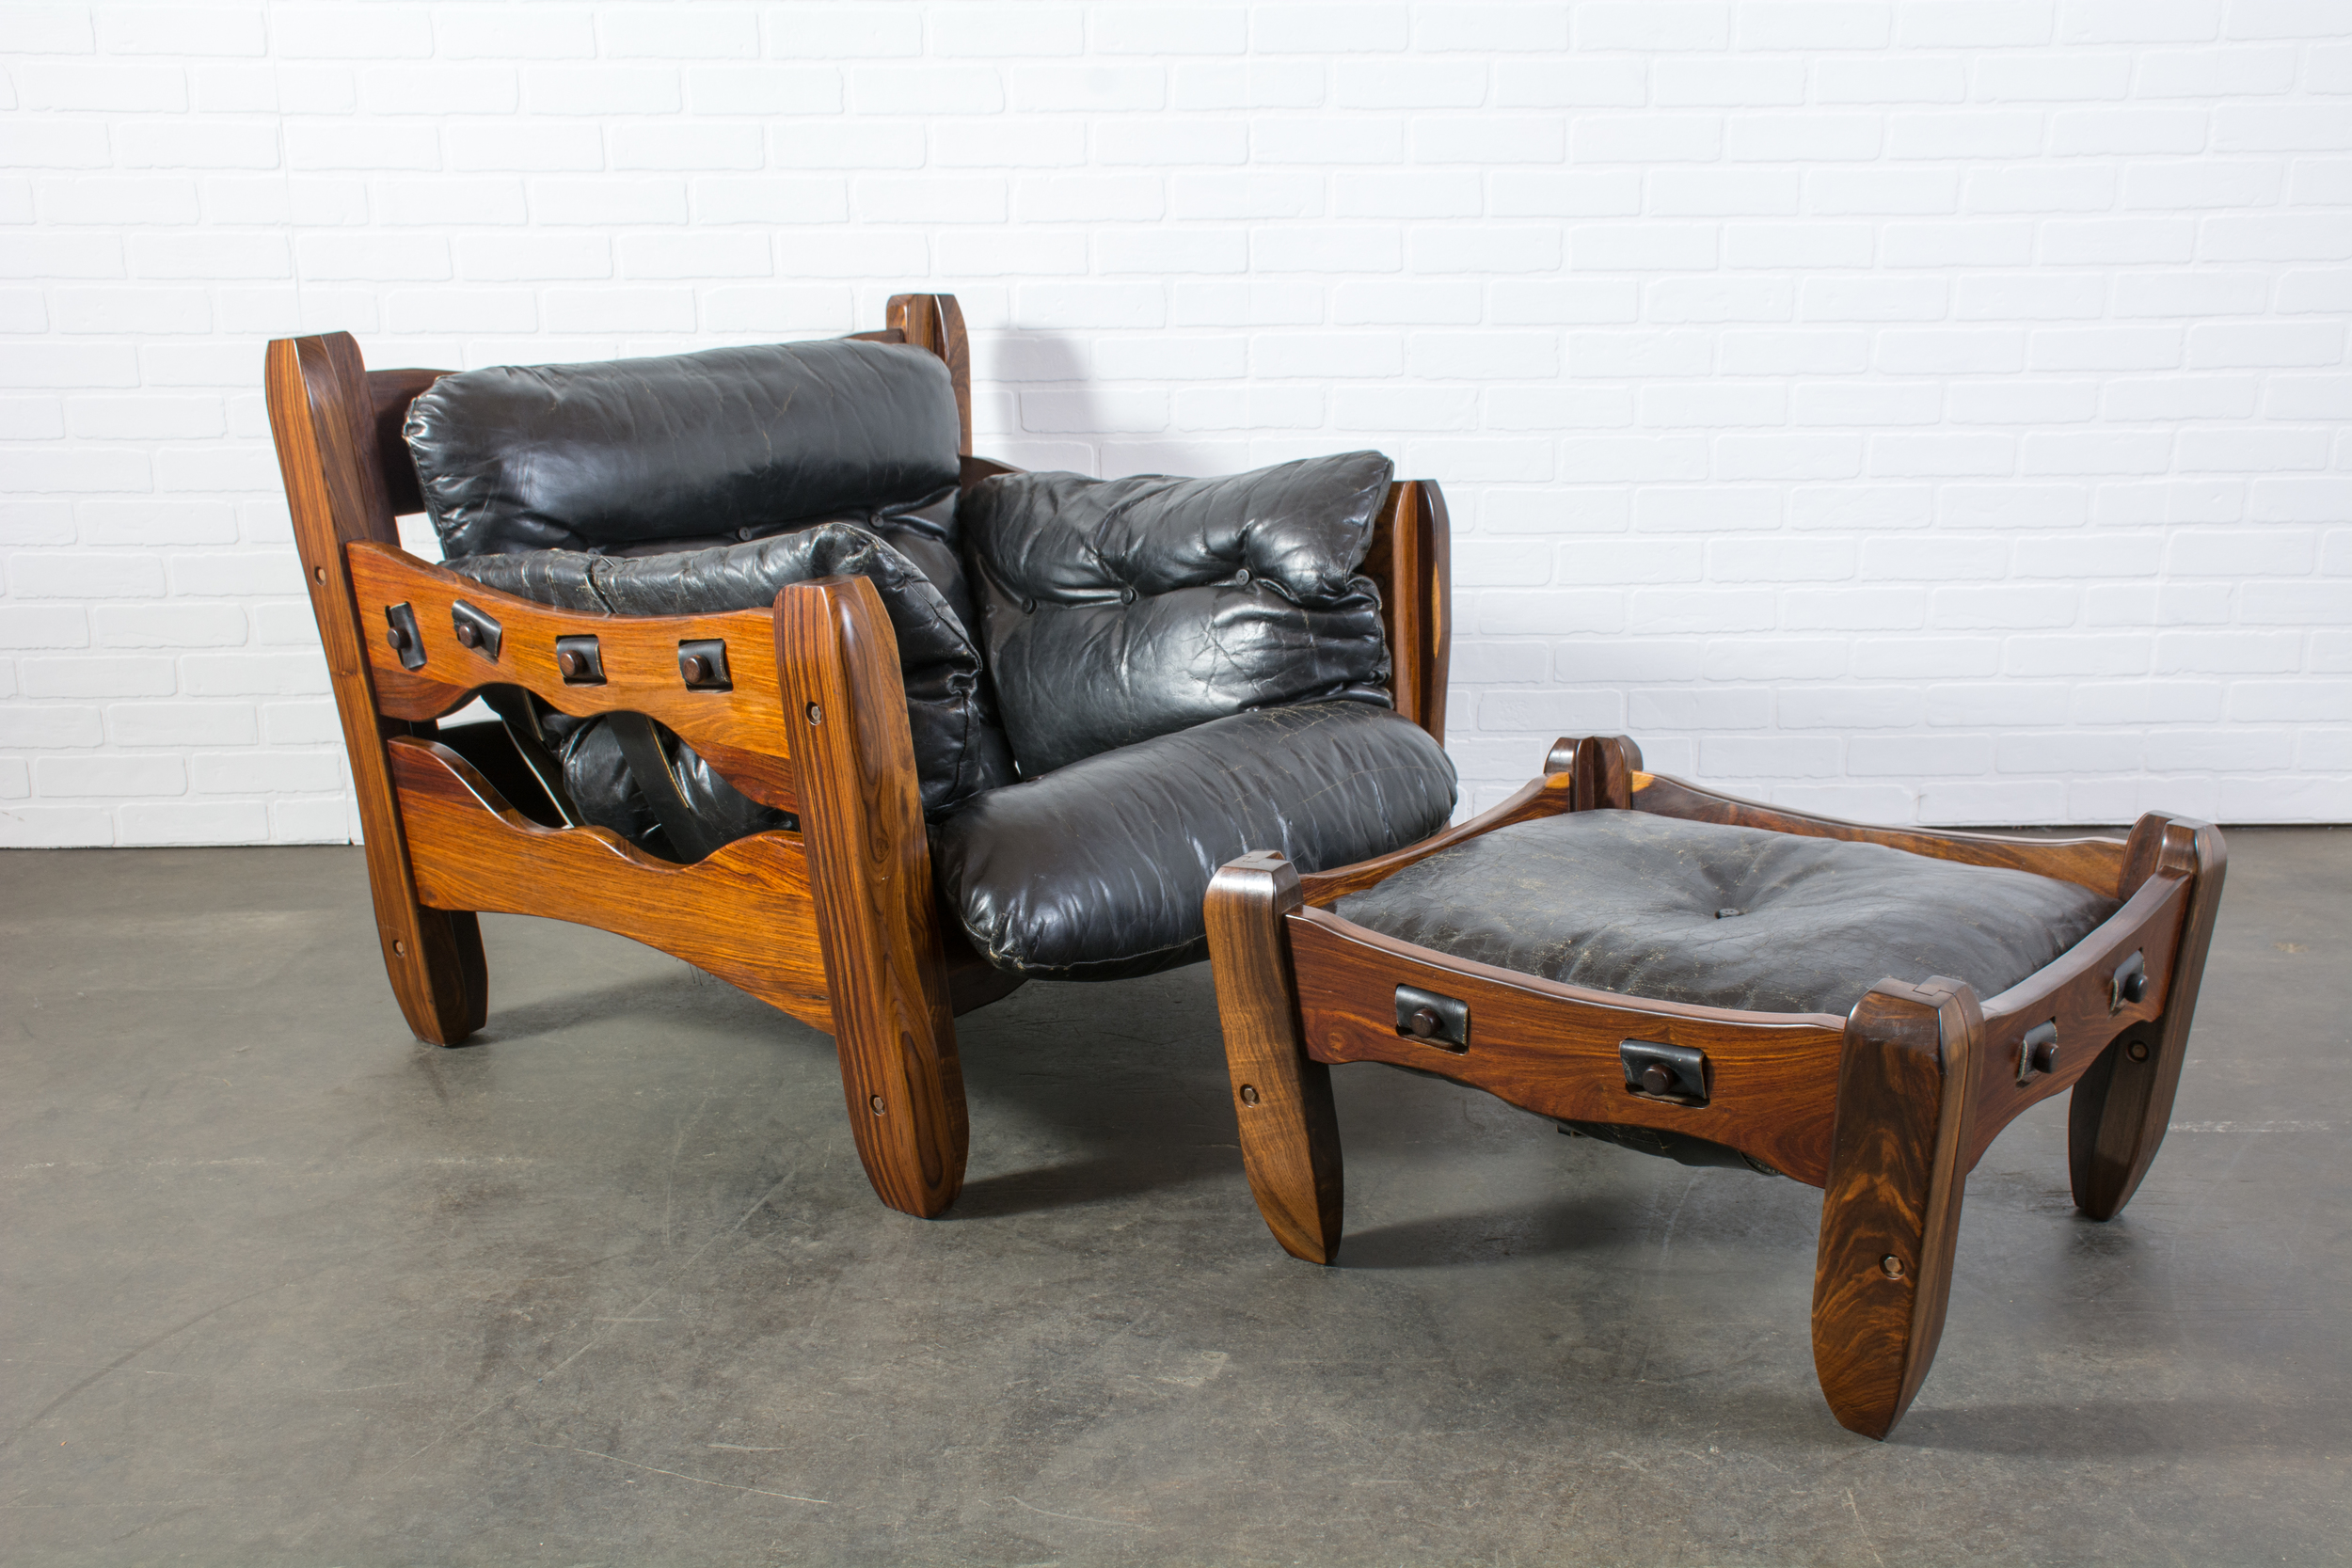 Descanso Chair and Ottoman by Don Shoemaker